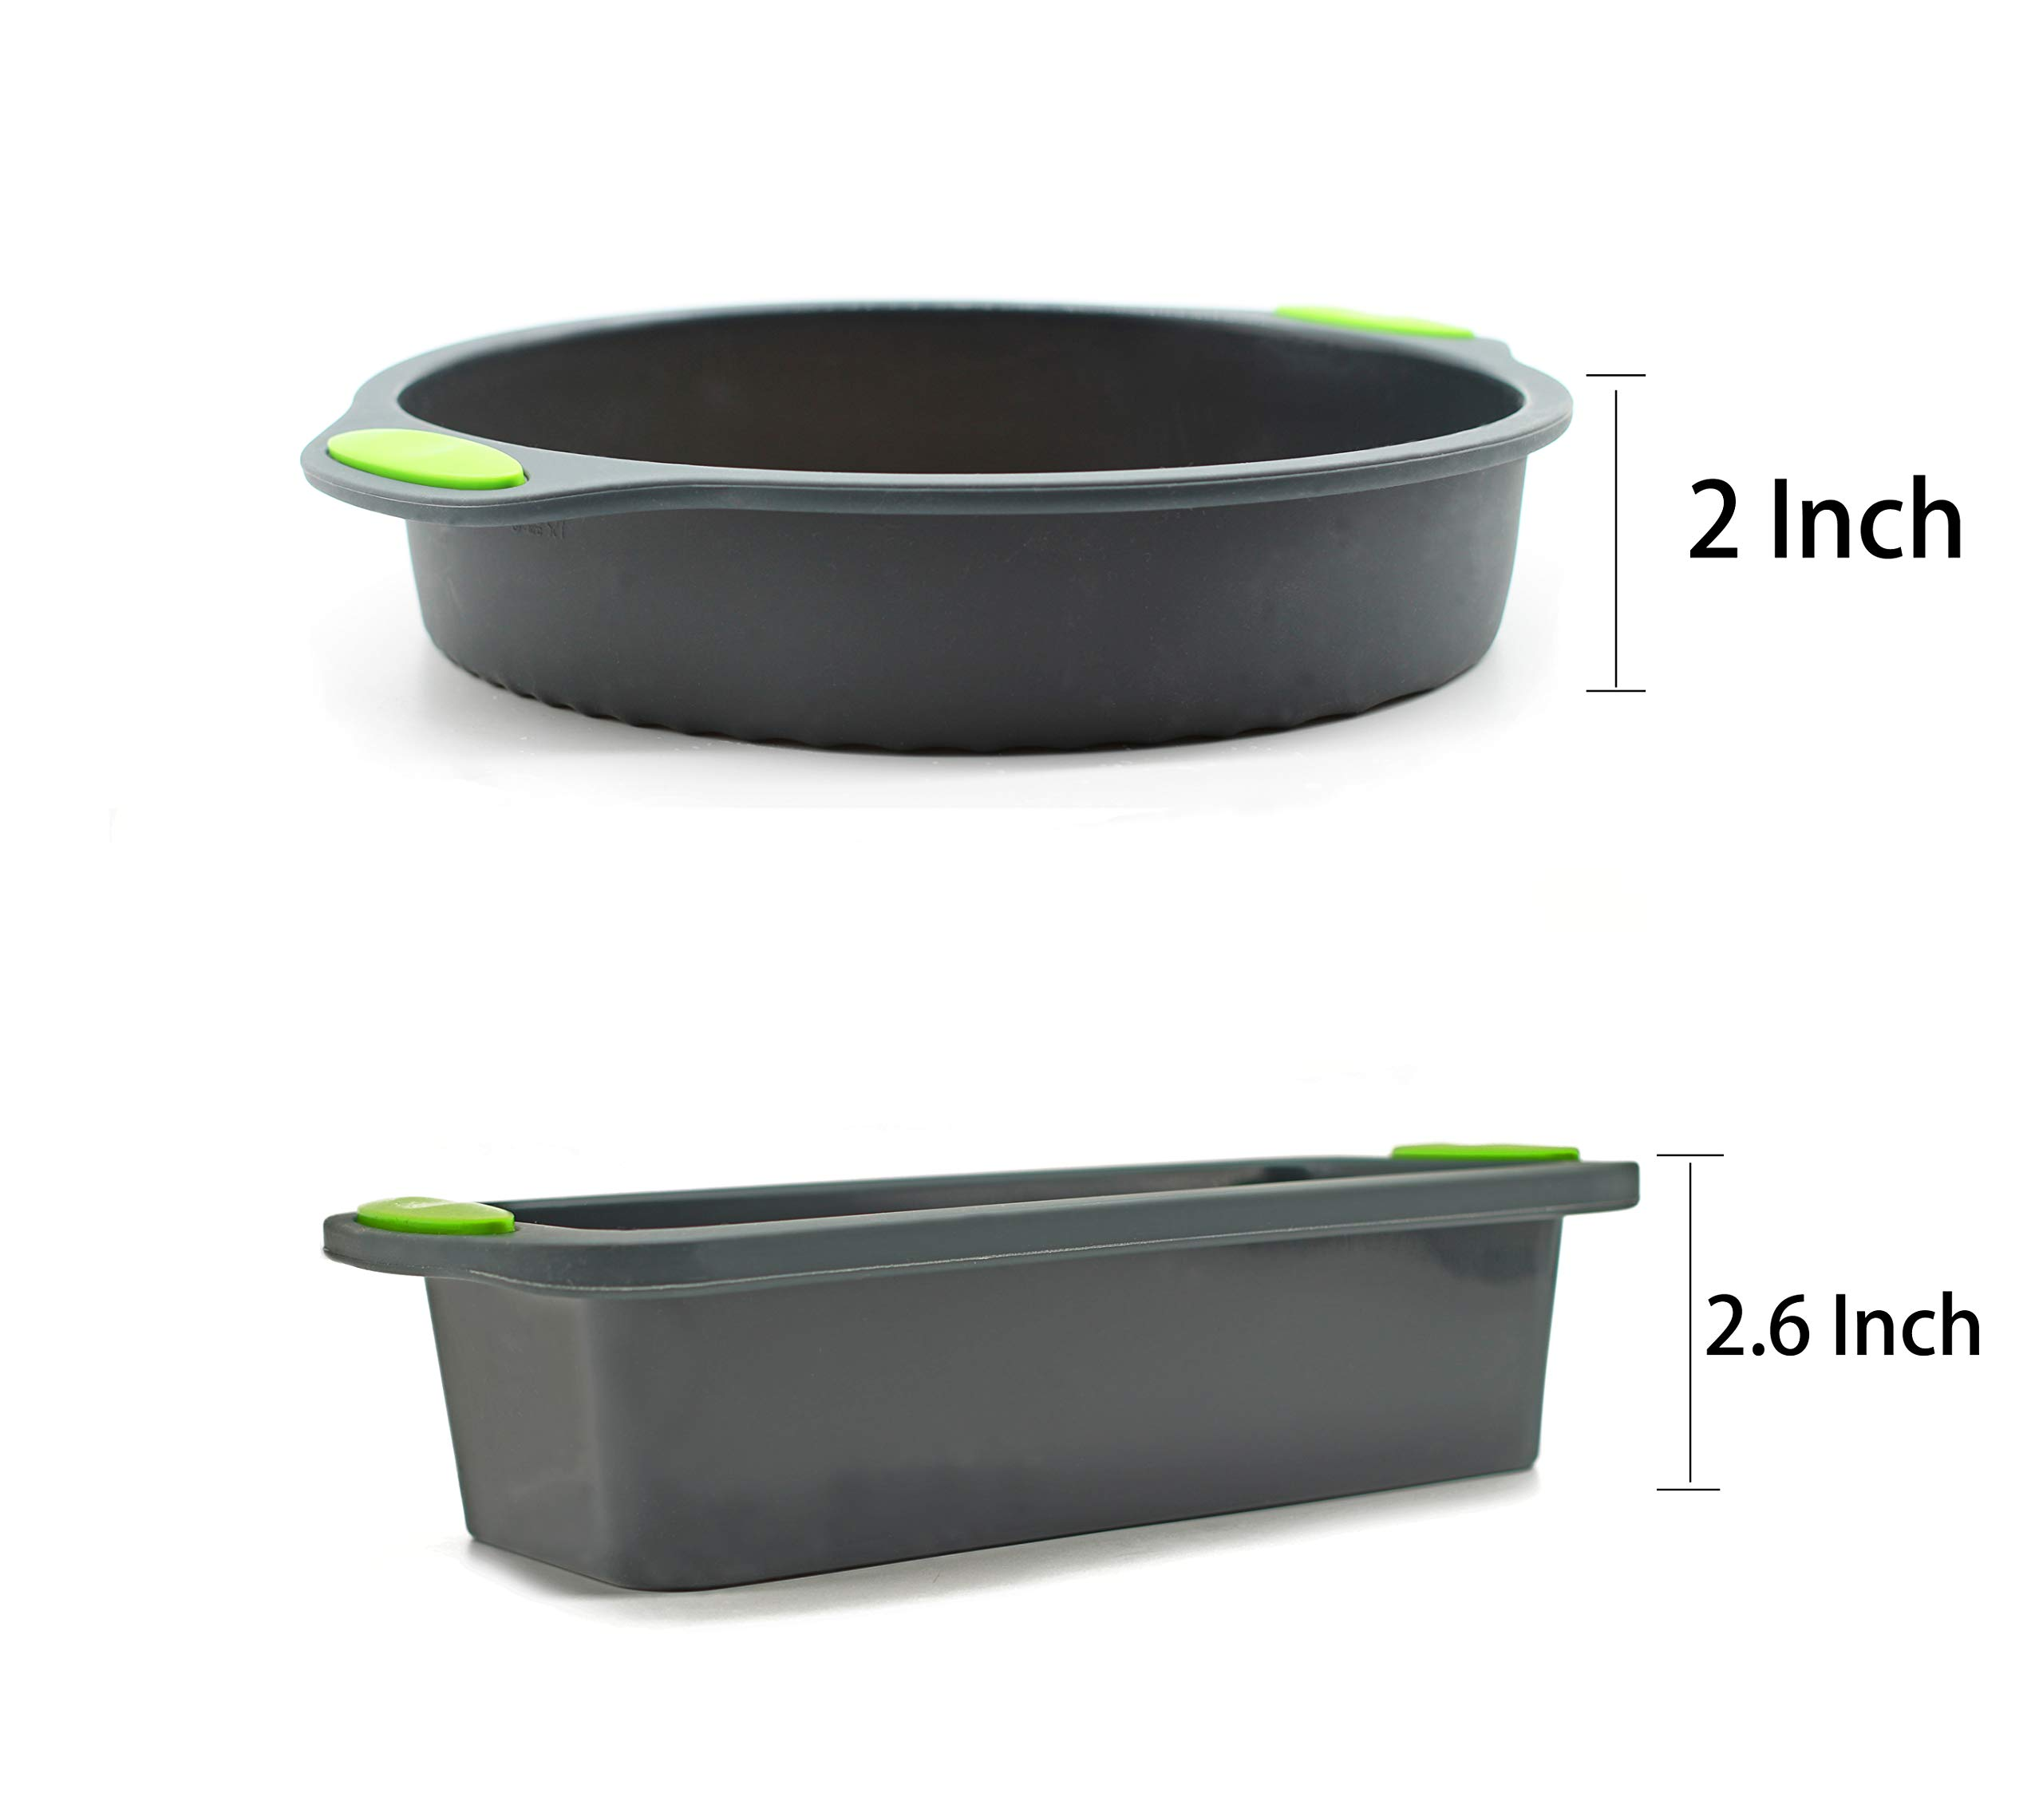 5 Pieces Silicone Bakeware Set | Food Grade FDA-Approved Silicone Molds | Round Cake Pan, Loaf Toast Bread Pan, 12 Cup Muffin Pan, 7-Cavity Donut Pan, 11x7.5-Inch Cake Tray - Baking Pans Nonstick Set by megrocle (Image #3)